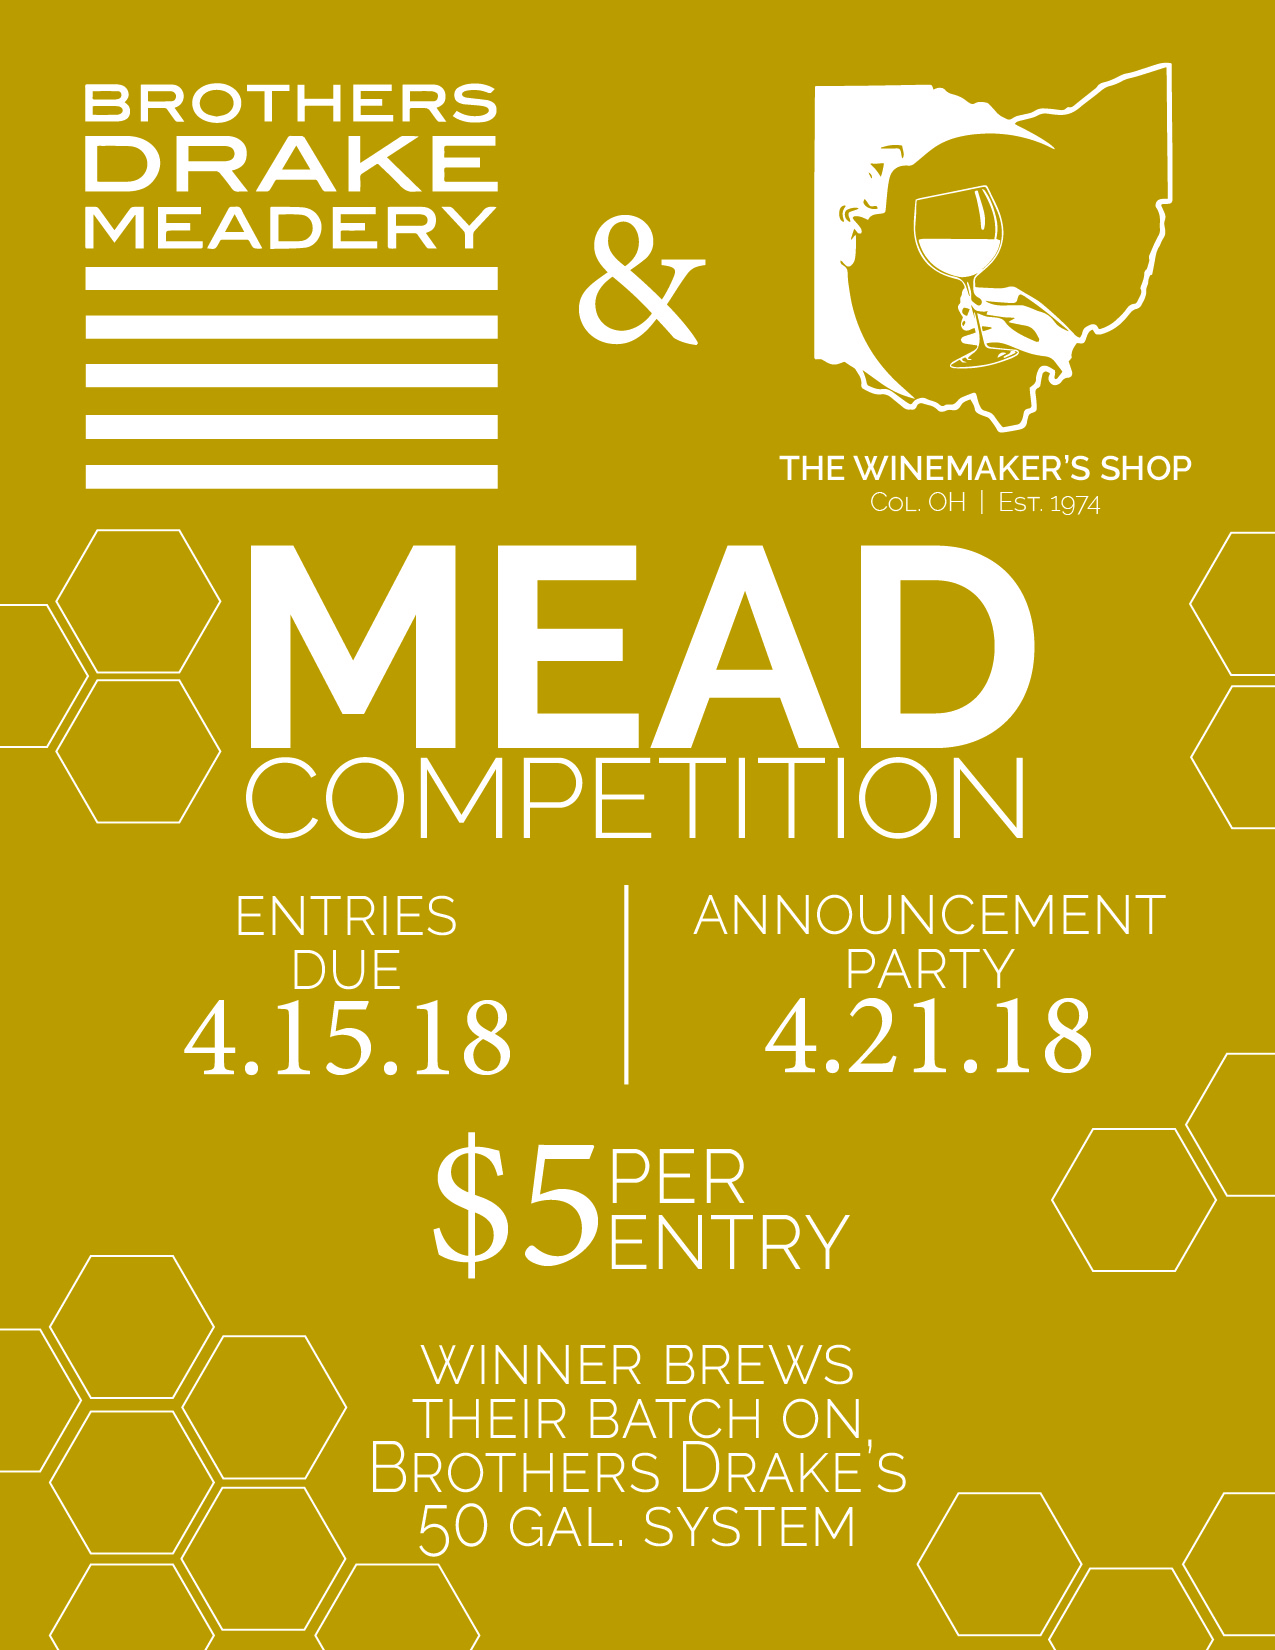 mead-competition-01.jpg